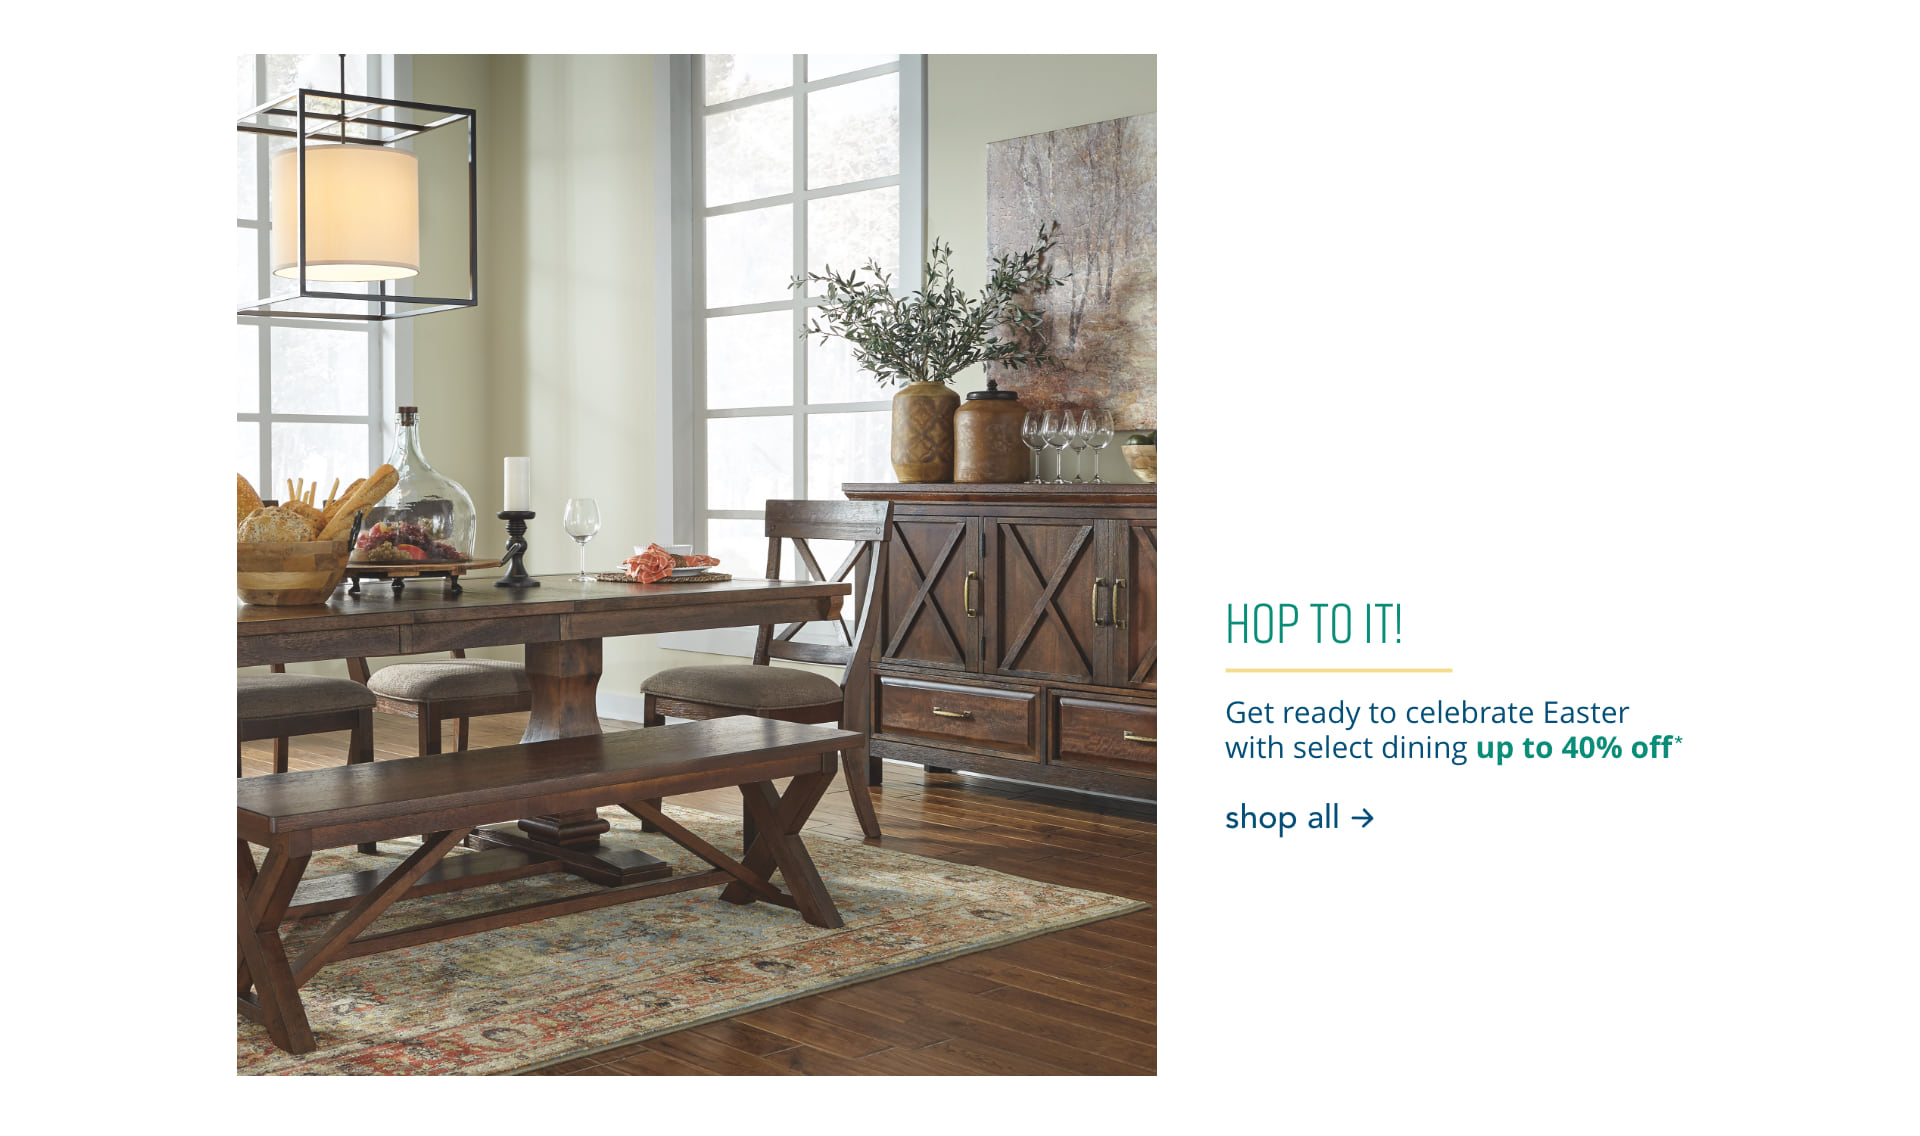 Shop Ashley Furniture HomeStore Online For Great Prices Stylish Furnishings And Home Decor Free